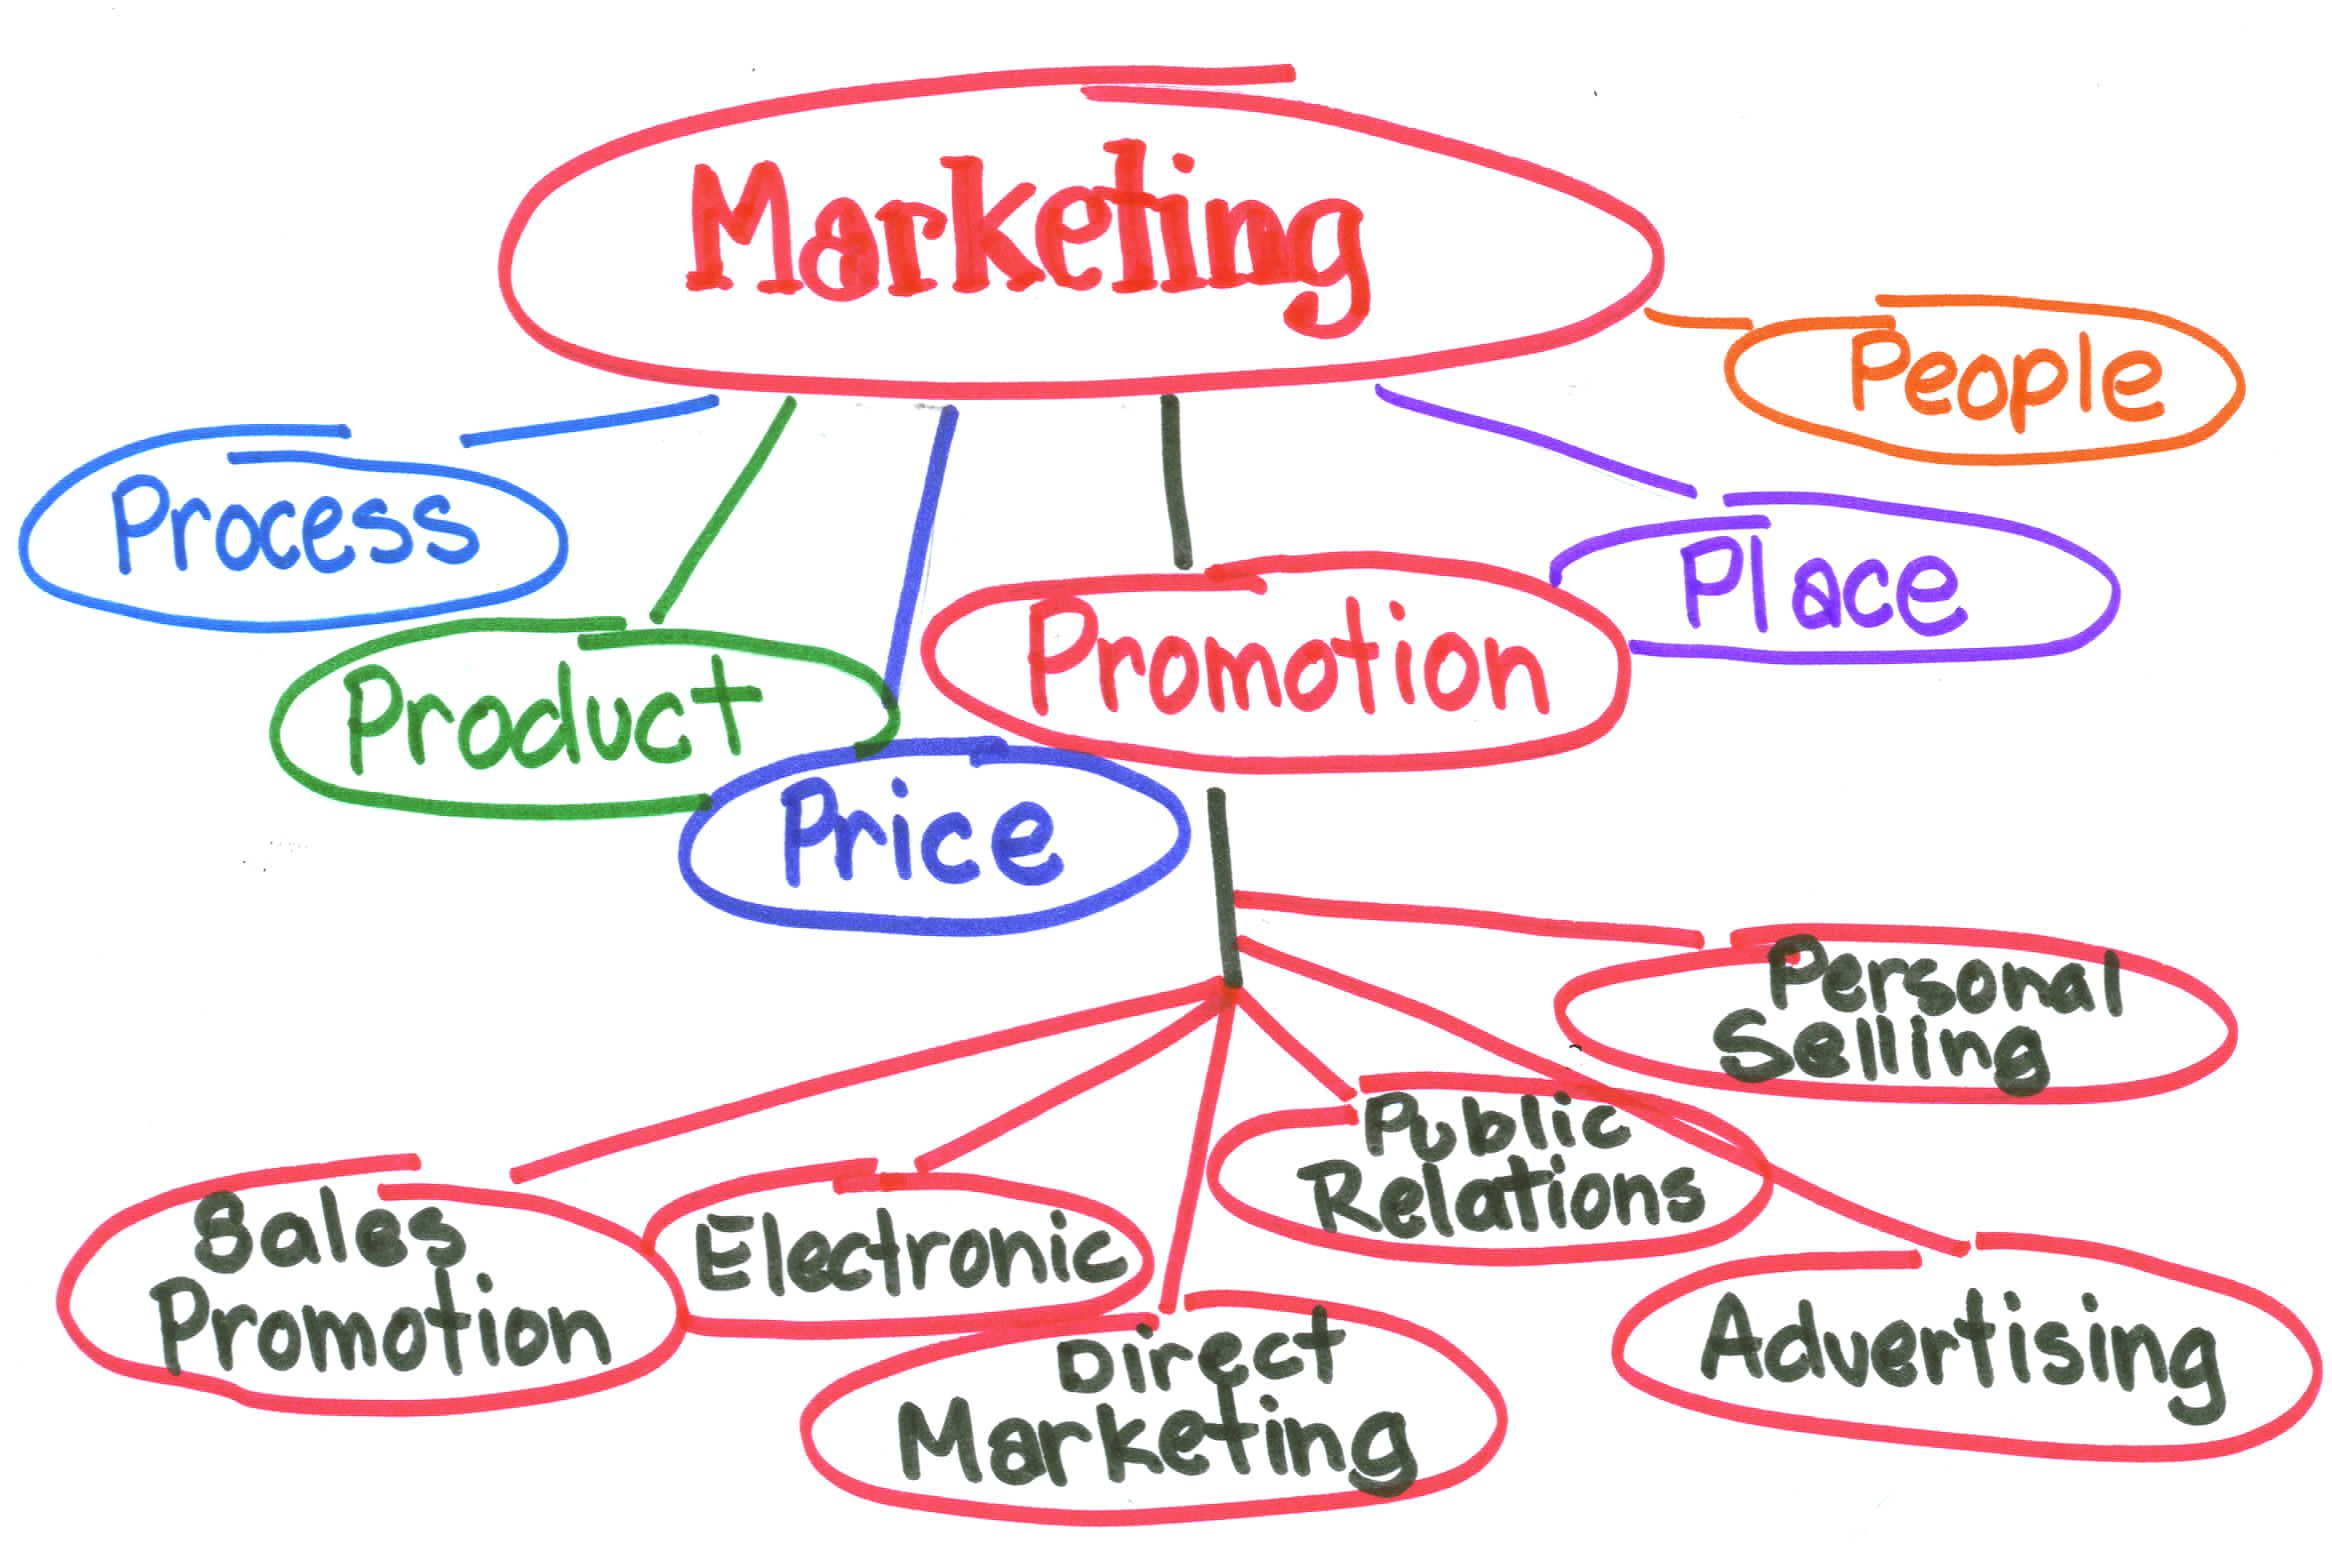 Marketing in a business